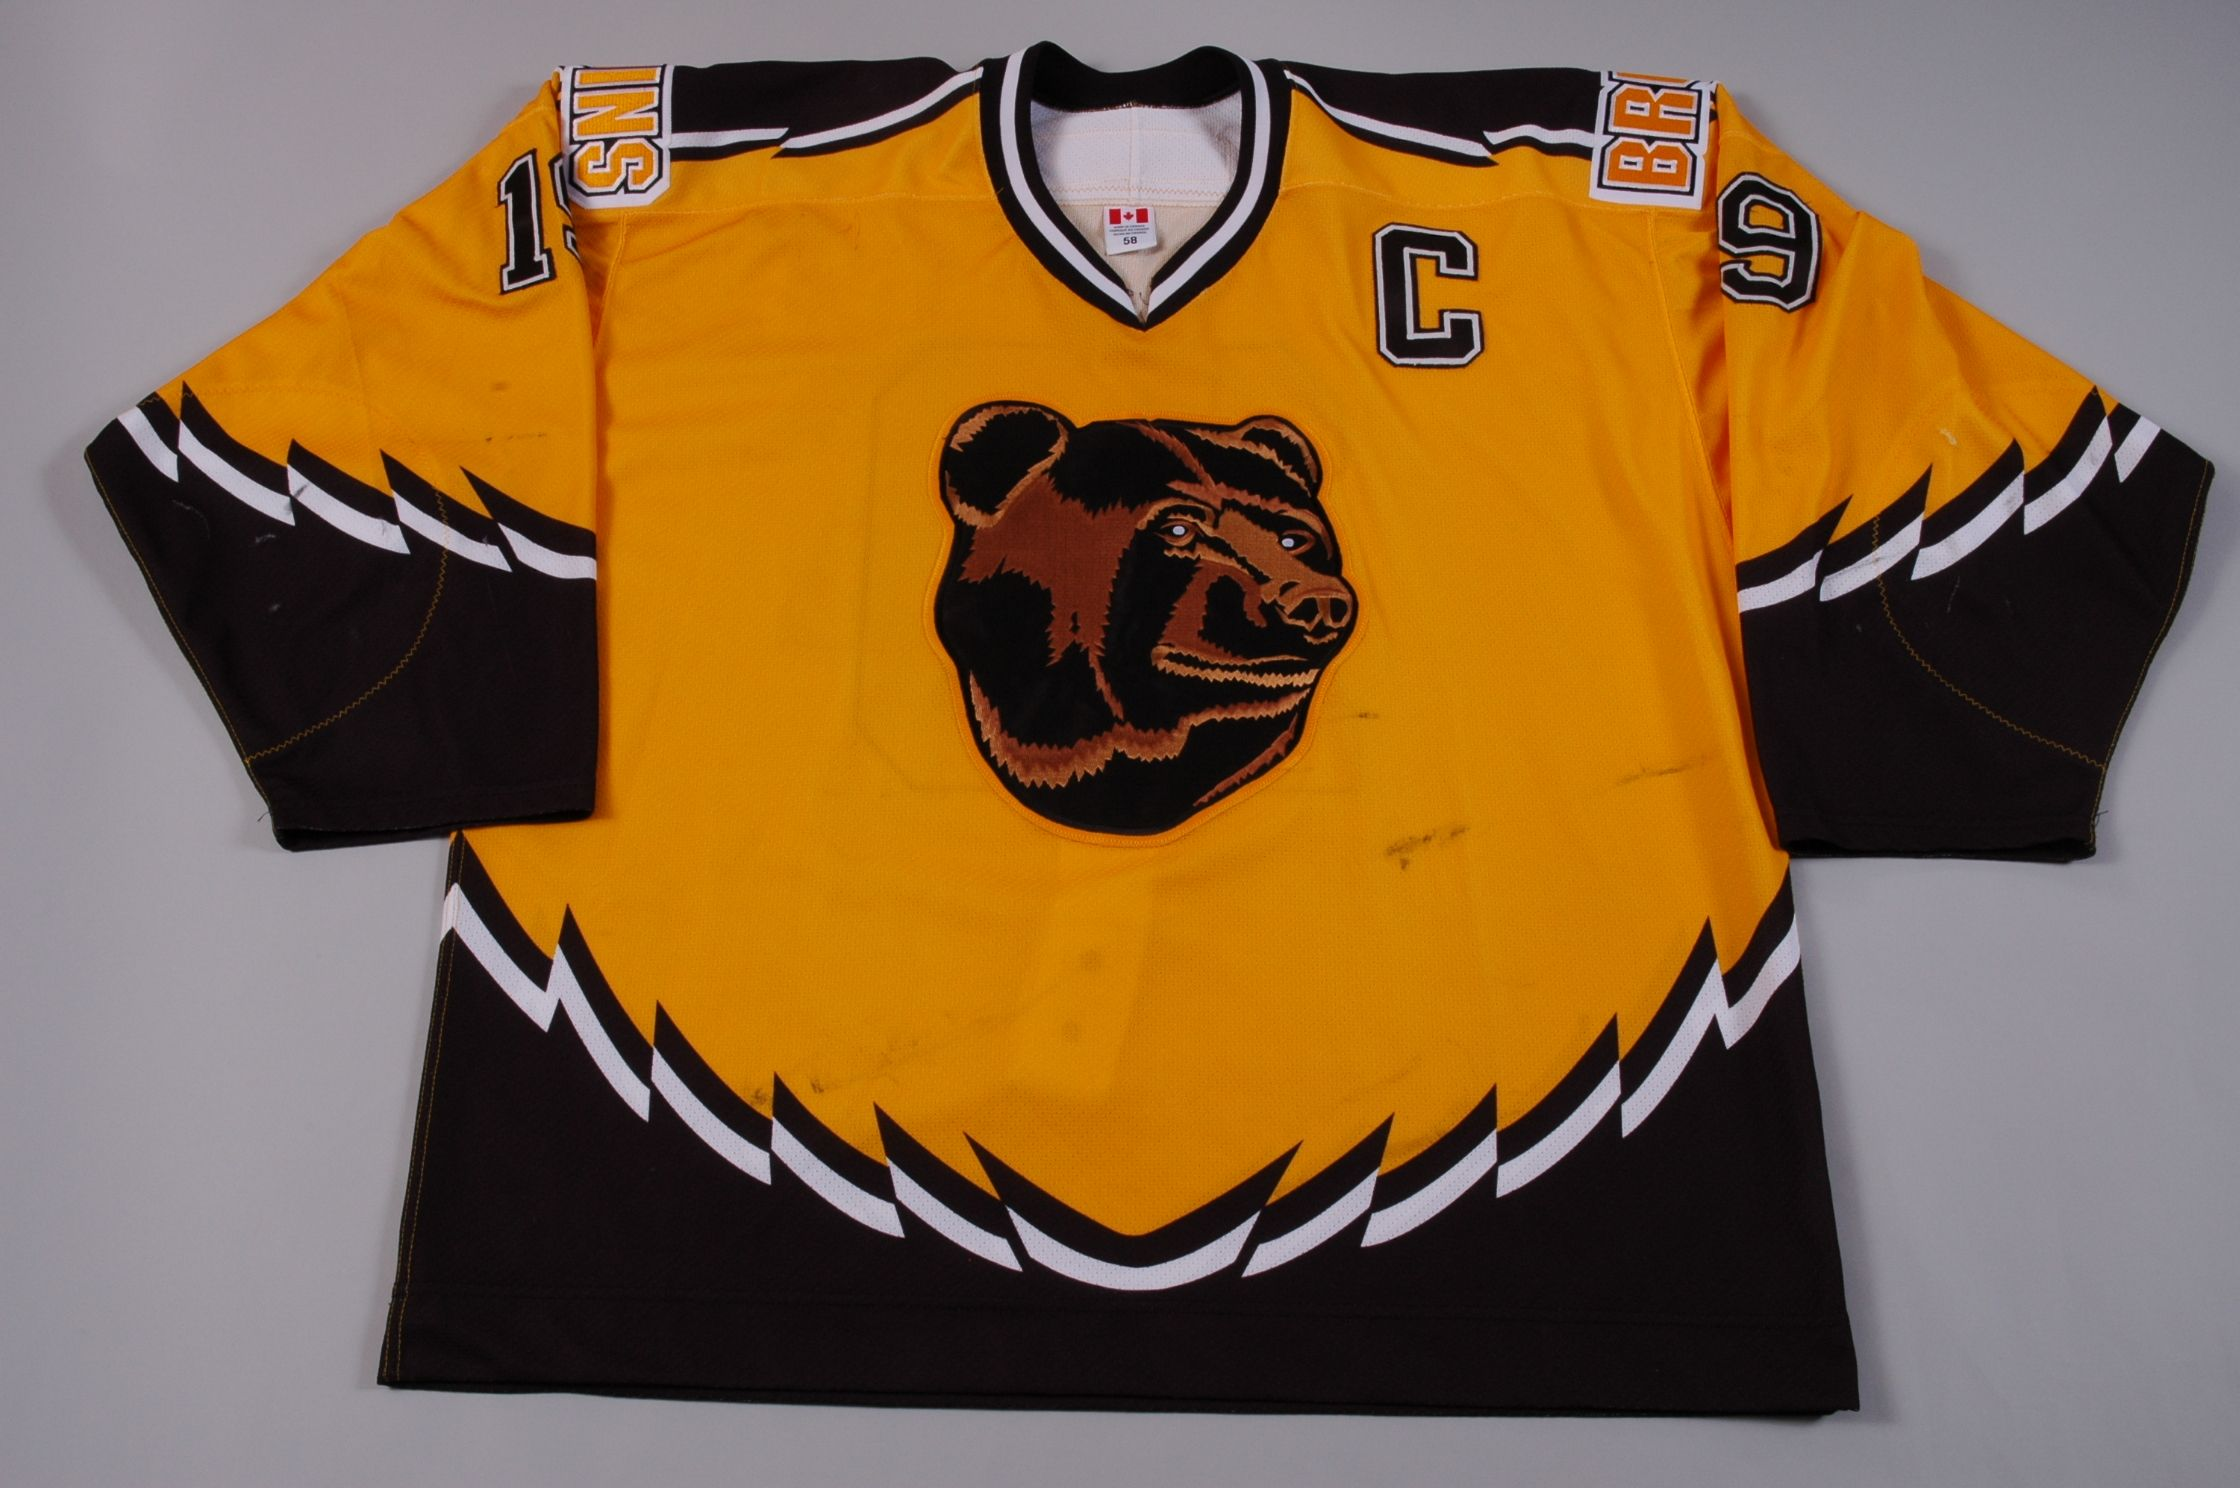 d0fc18984 boston bruins jersey history - Google Search | If I had $1,000,000 ...